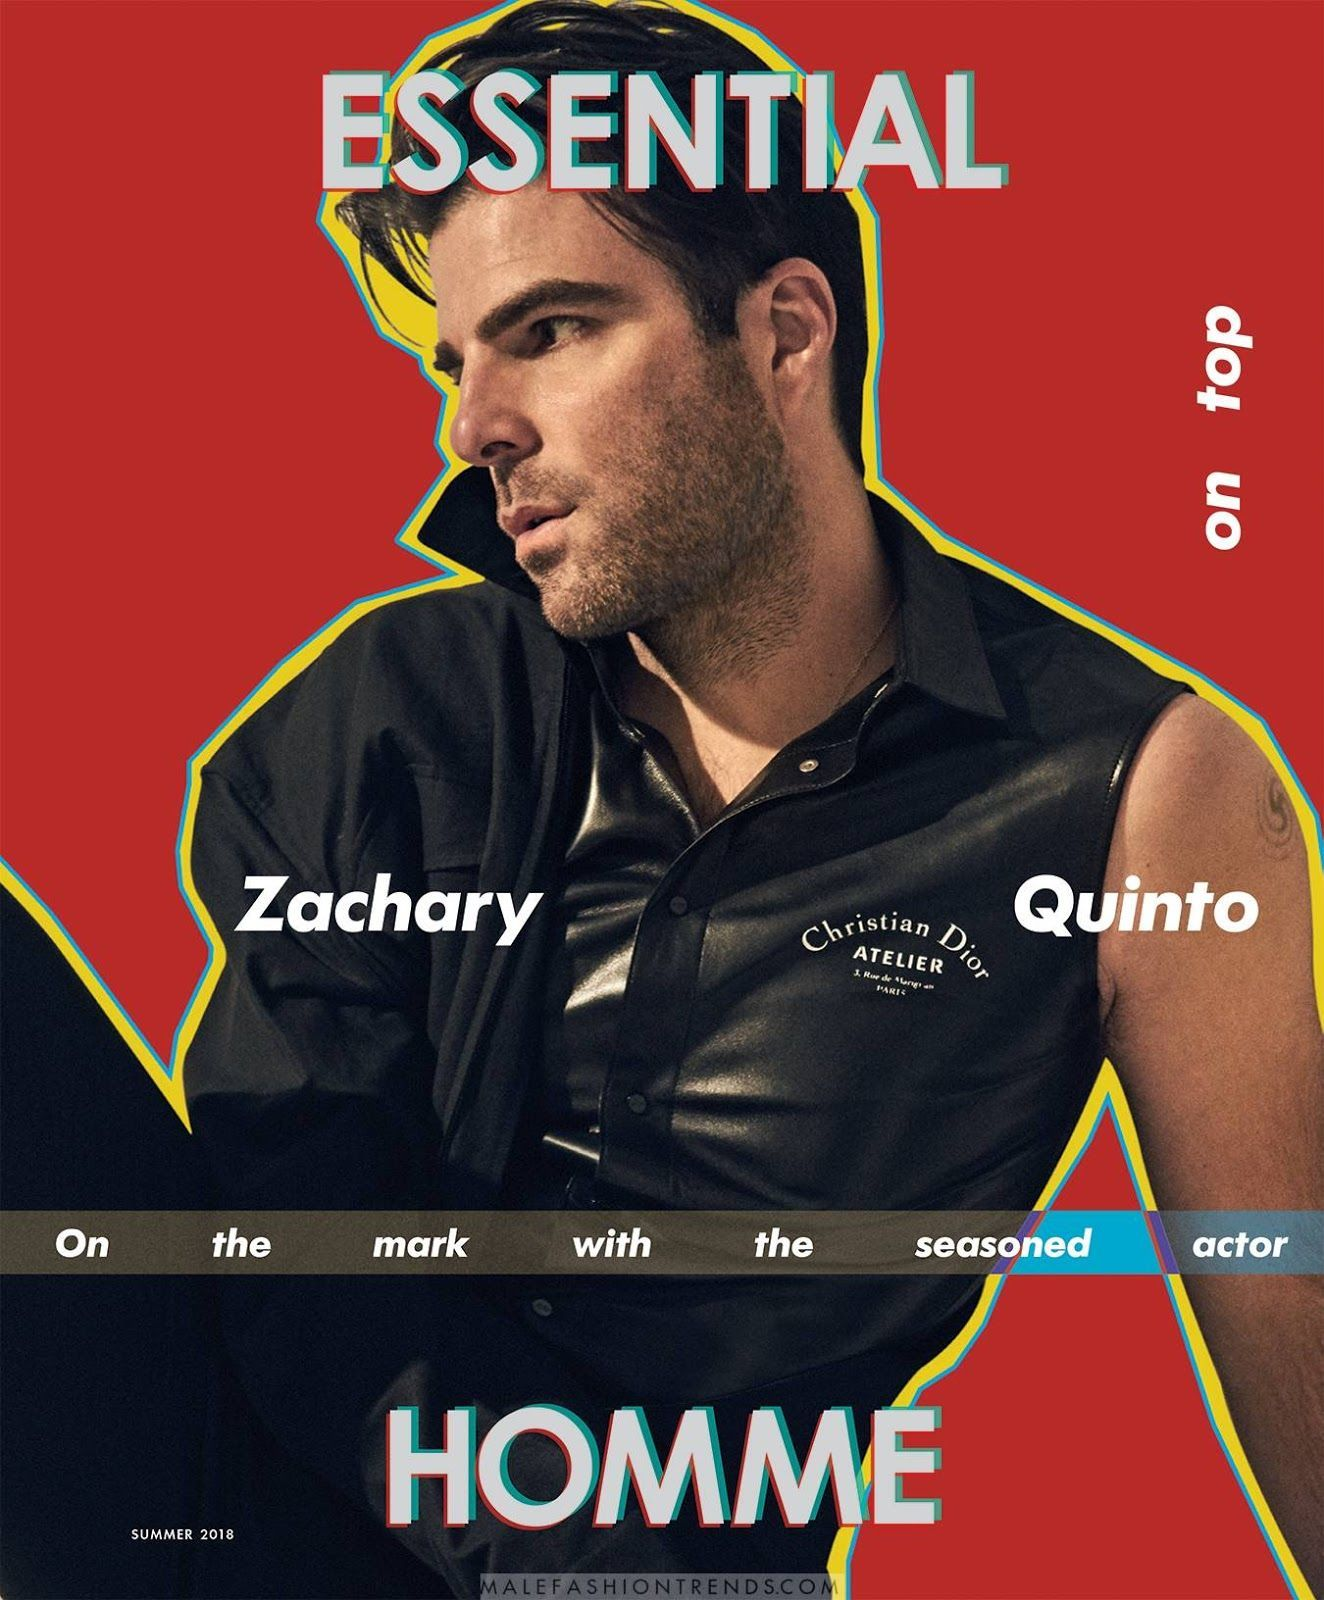 Male Fashion Trends: Zachary Quinto para Essential Homme